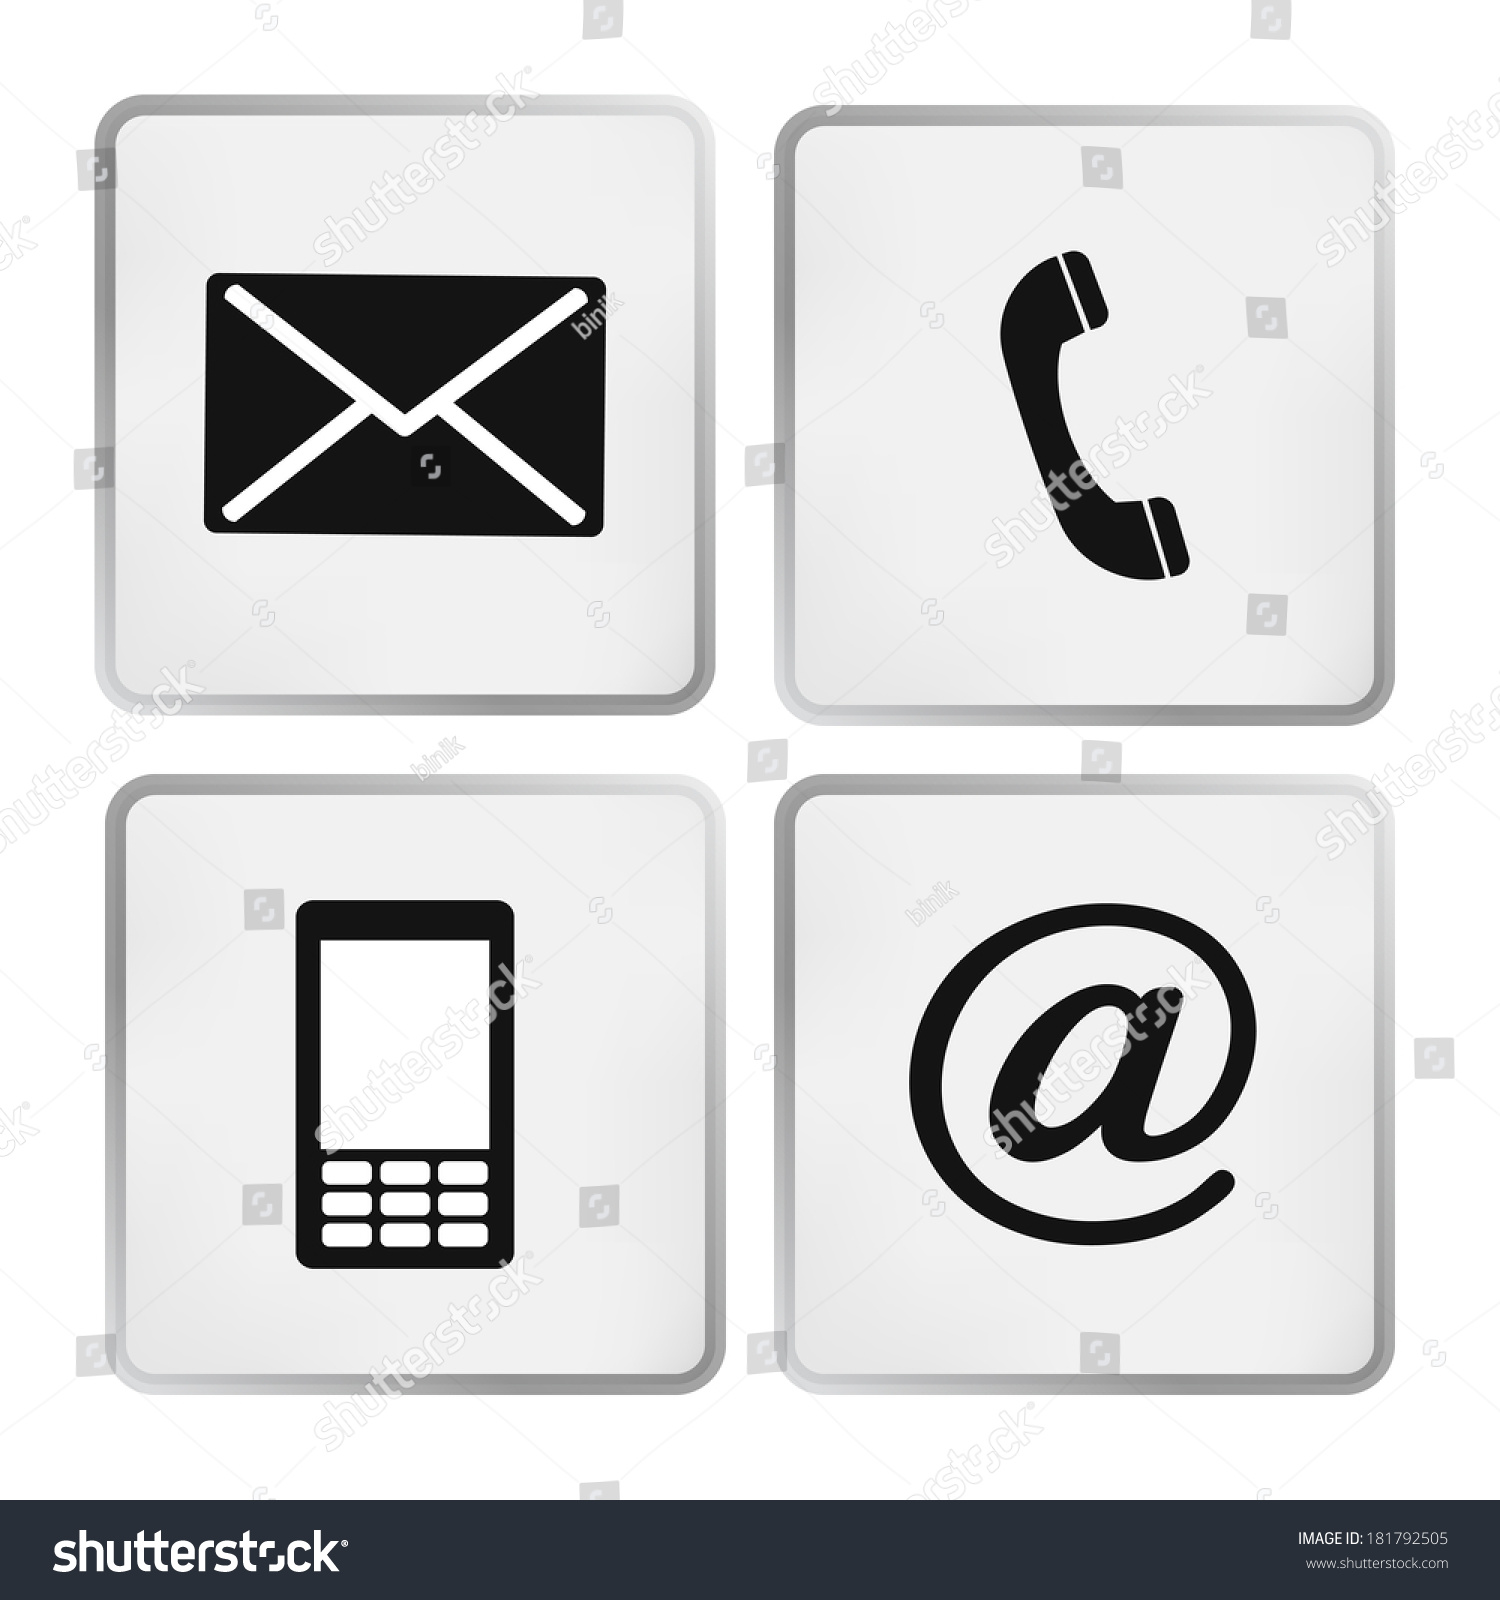 how to set email on phone